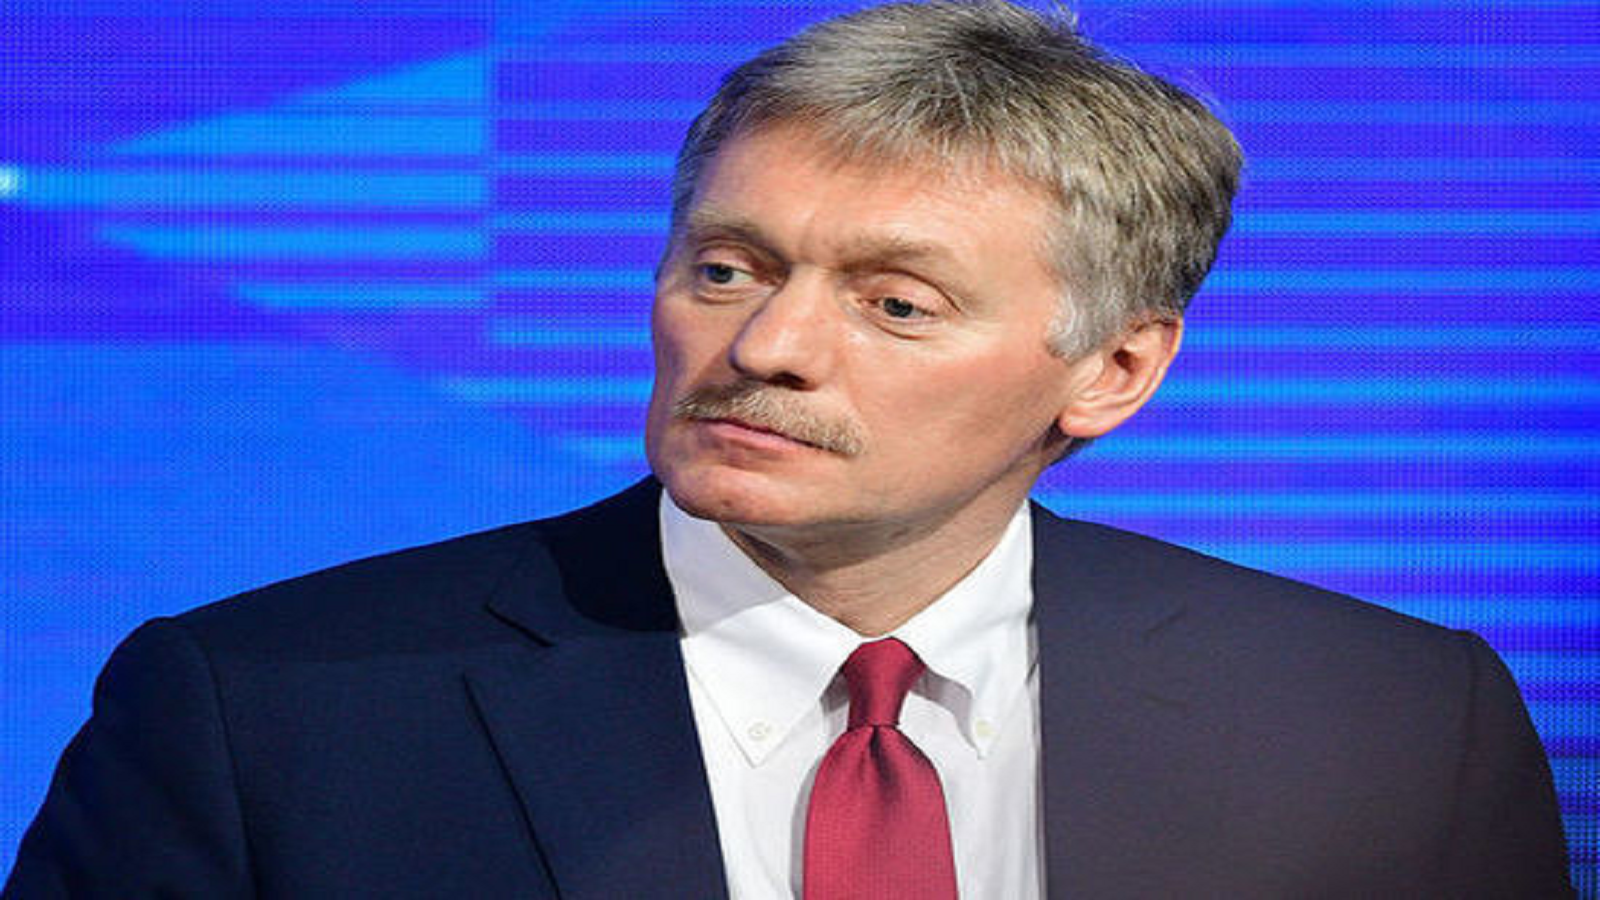 Photo of The Kremlin responded to a question about the peak of the Coronavirus pandemic